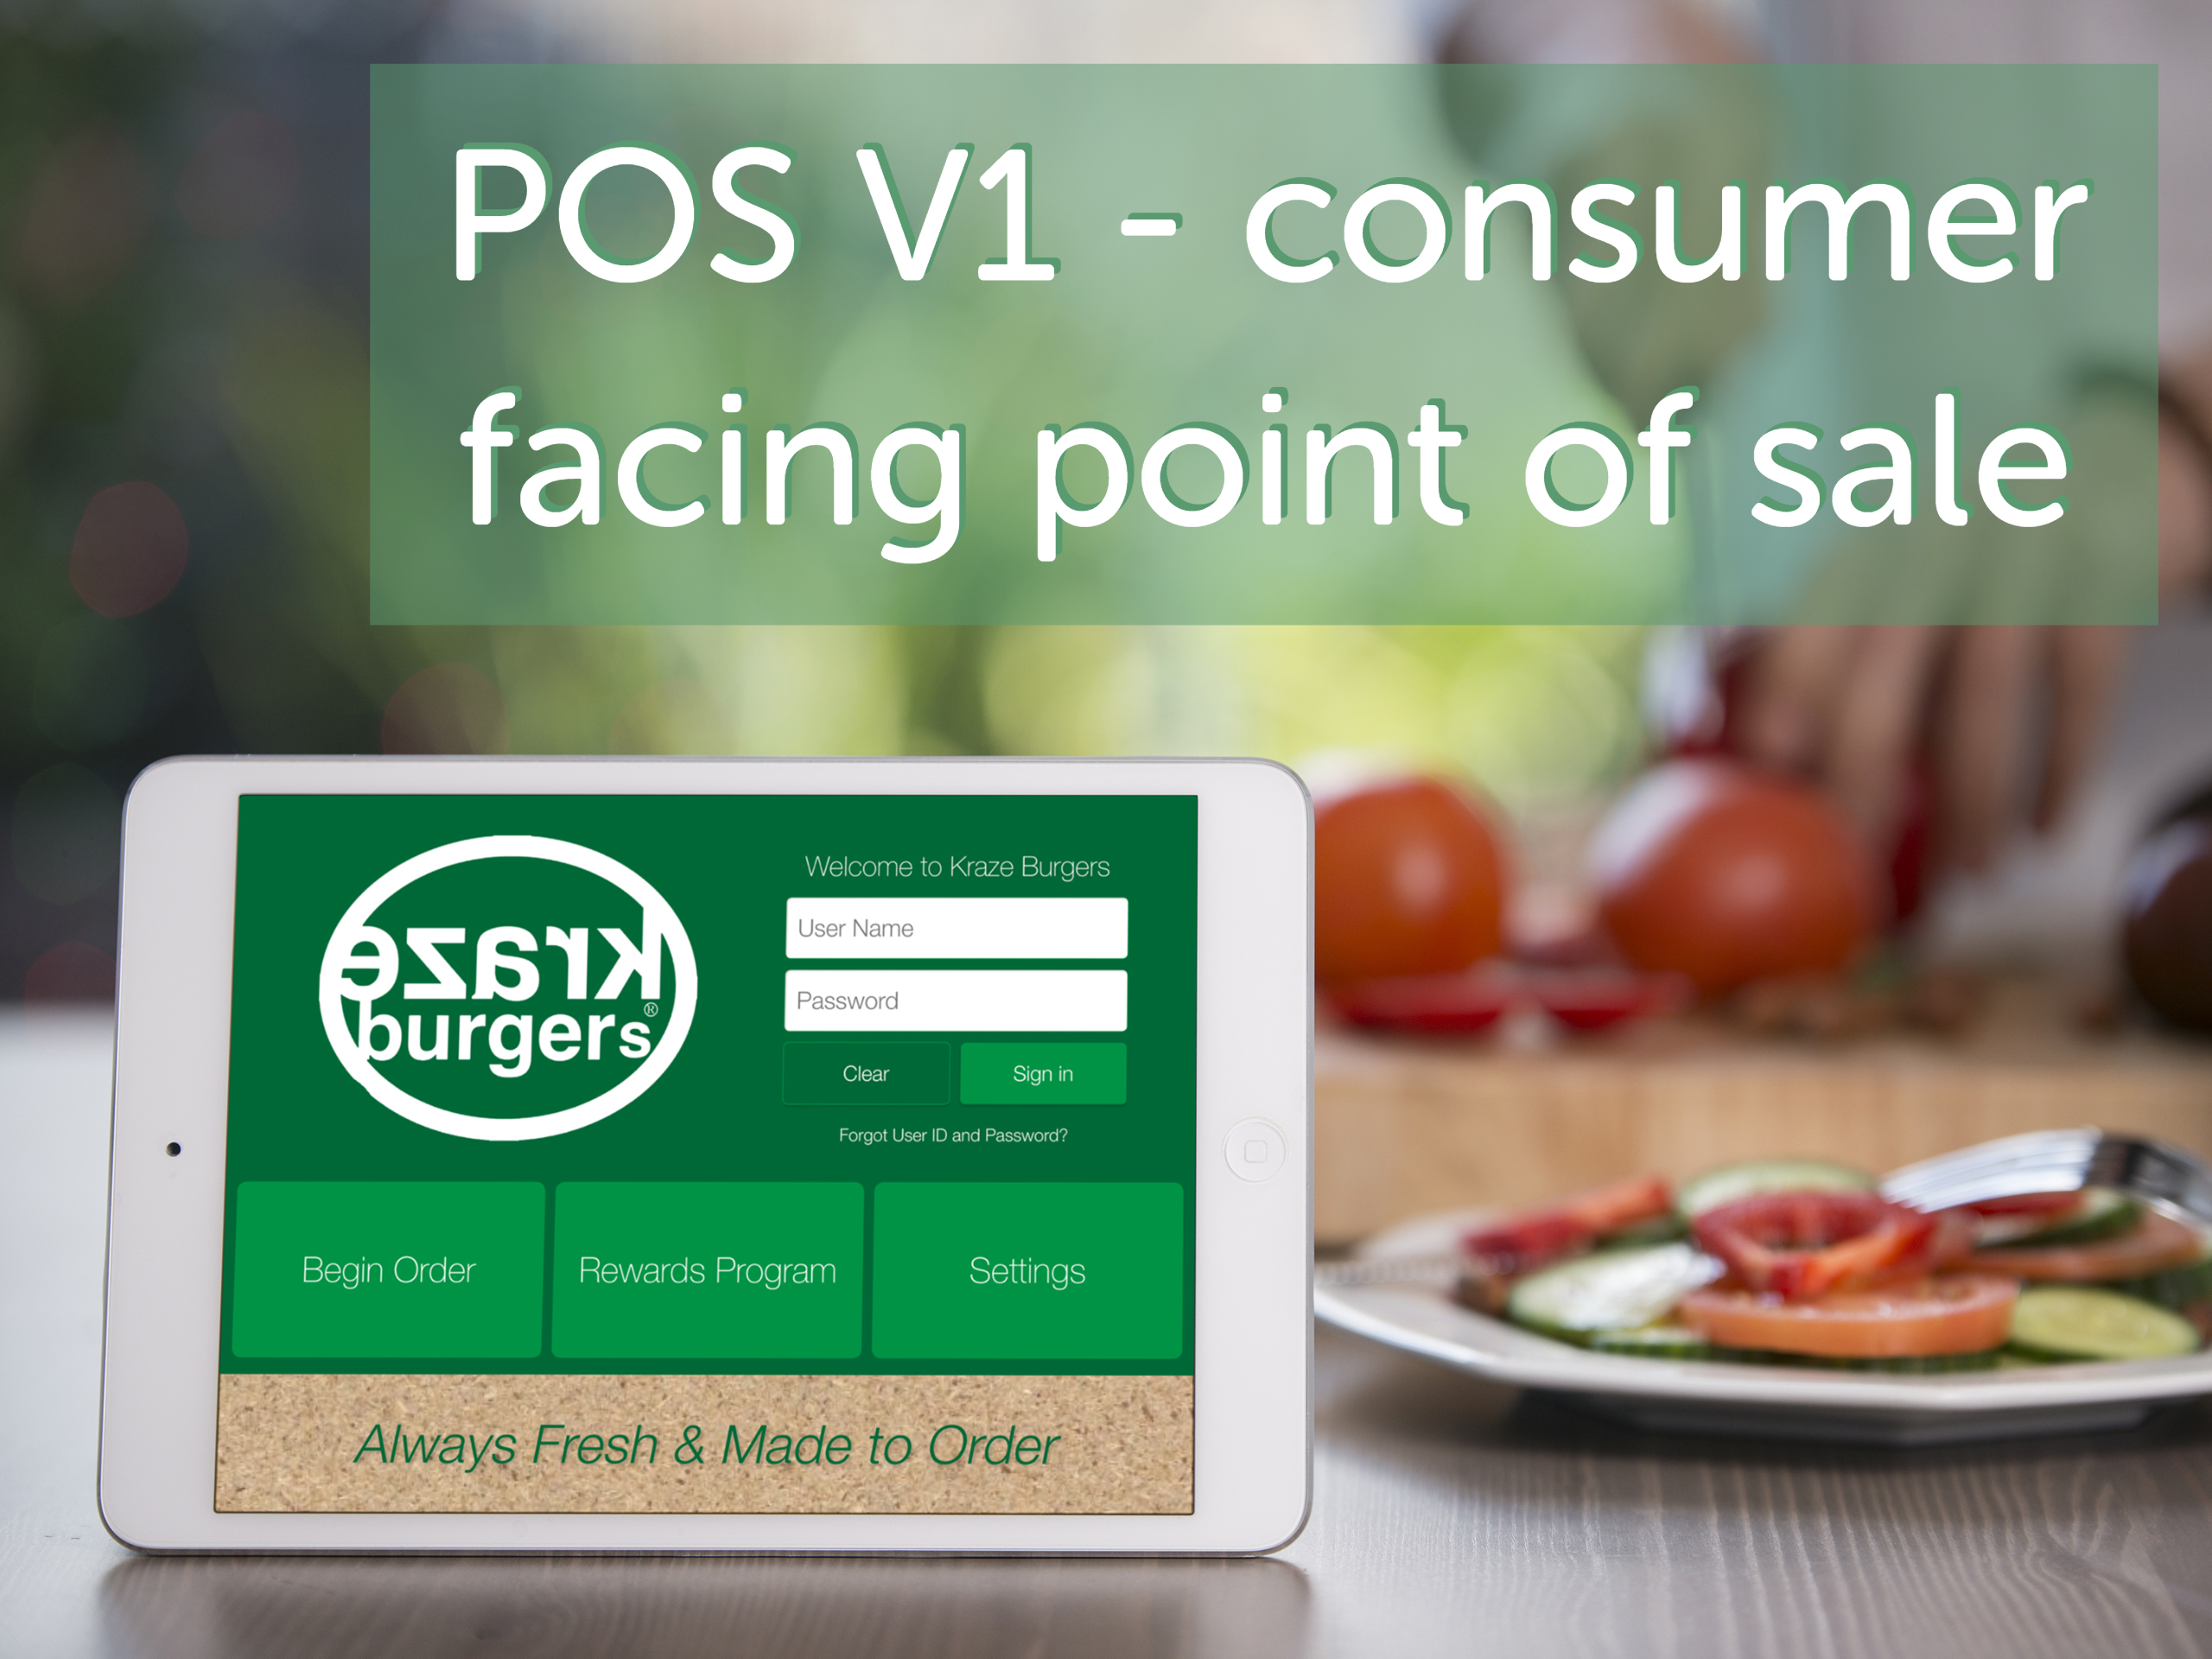 POS V1- a consumer facing point of sales iPad app